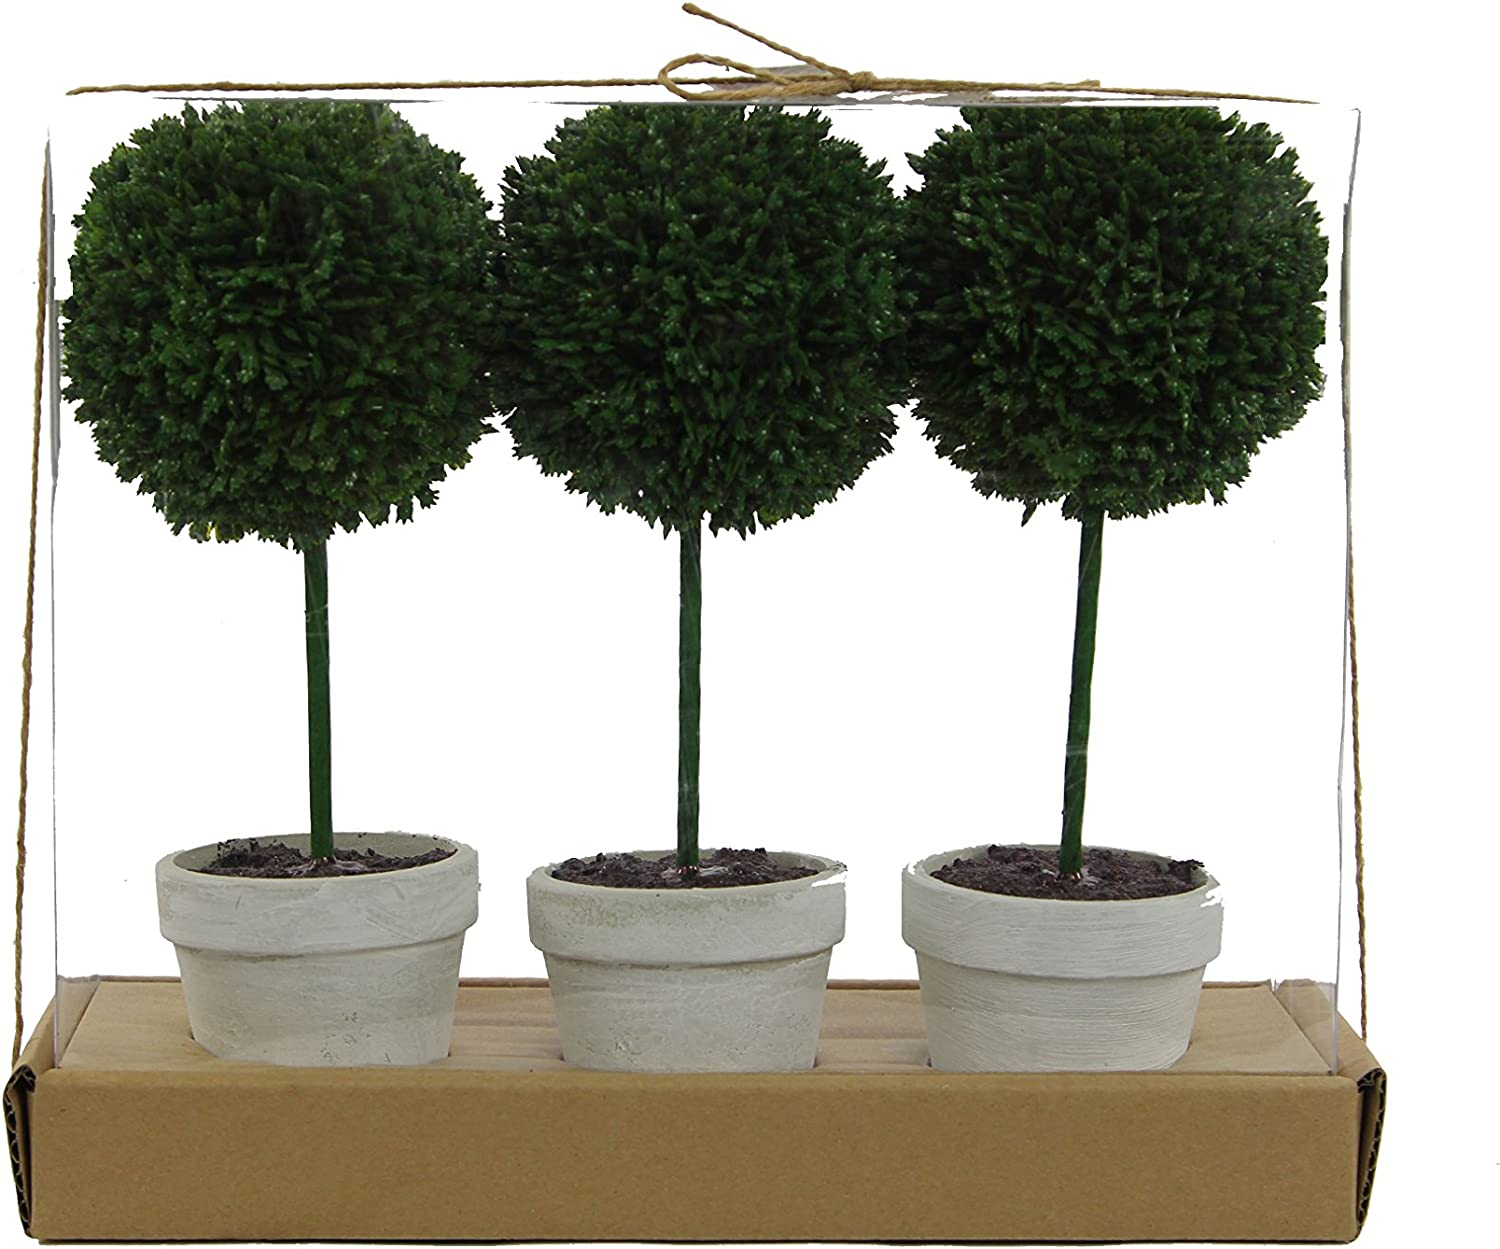 "Admired By Nature 9"" H Artificial Boxwood Ball Topiary Plant Tabletop, Set of 3"